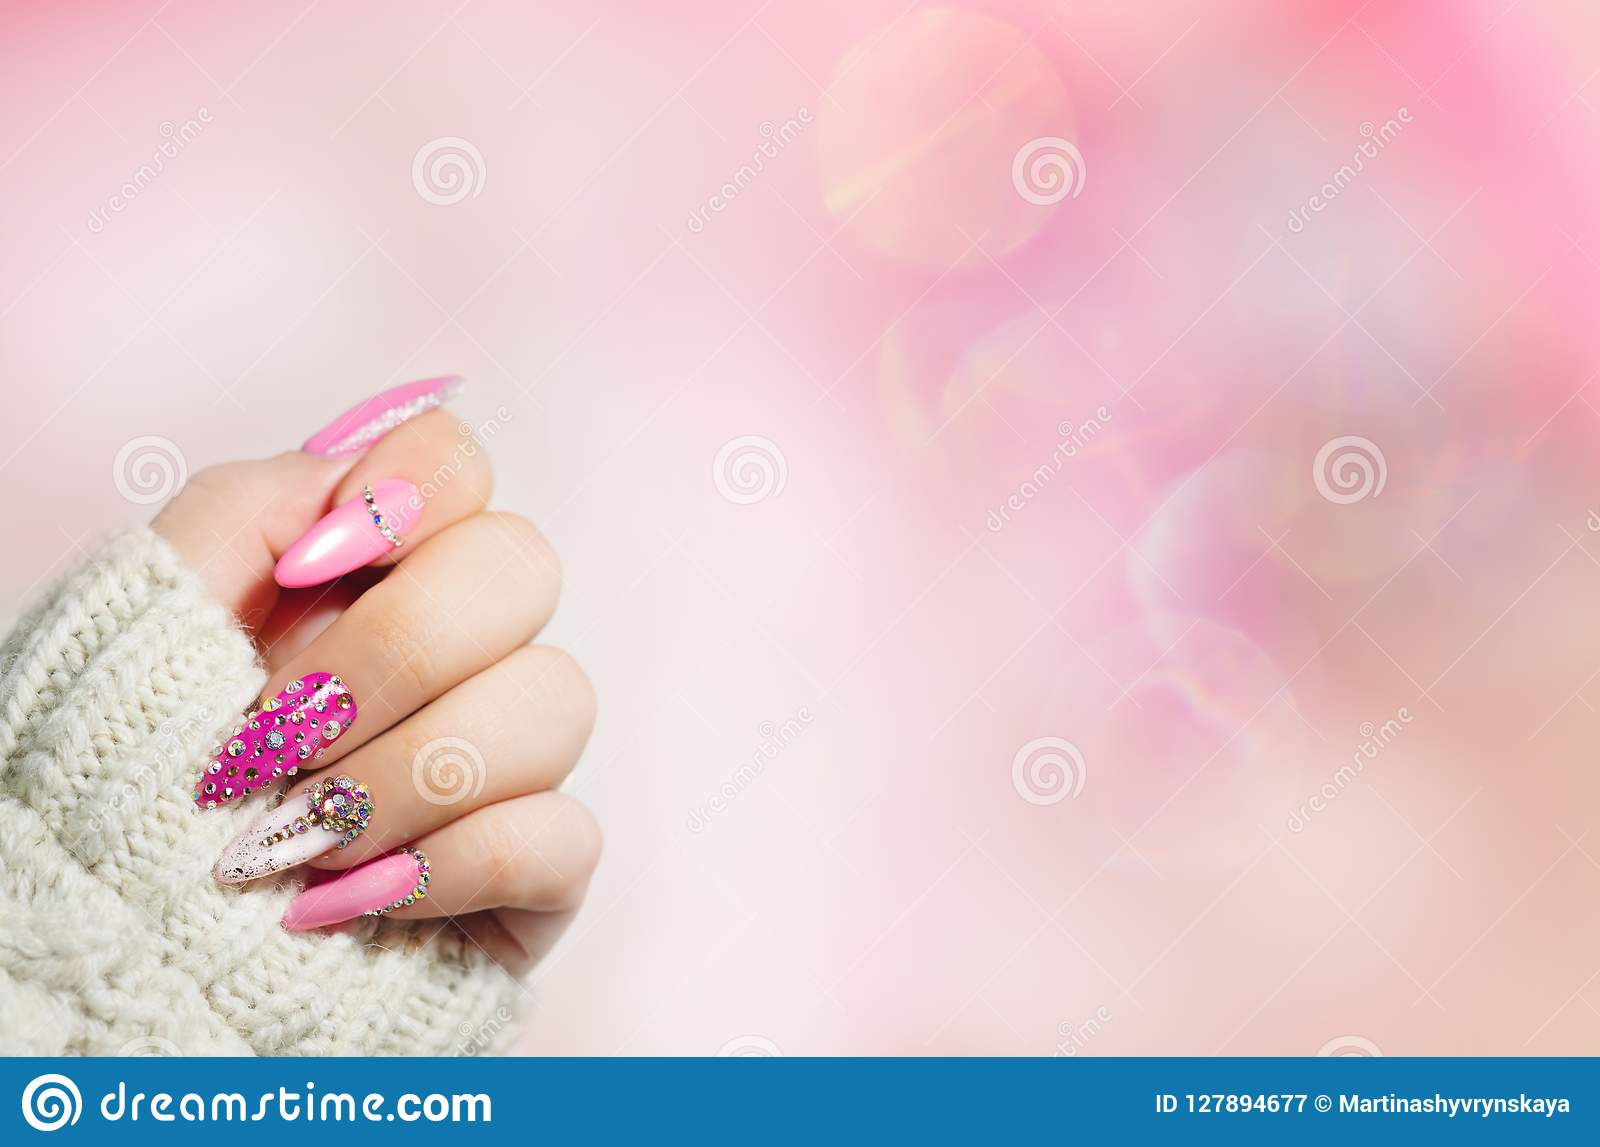 Colorful Nail Art Manicure Holiday Style Bright Manicure Wi Stock Image Image Of Fashion Hand 127894677